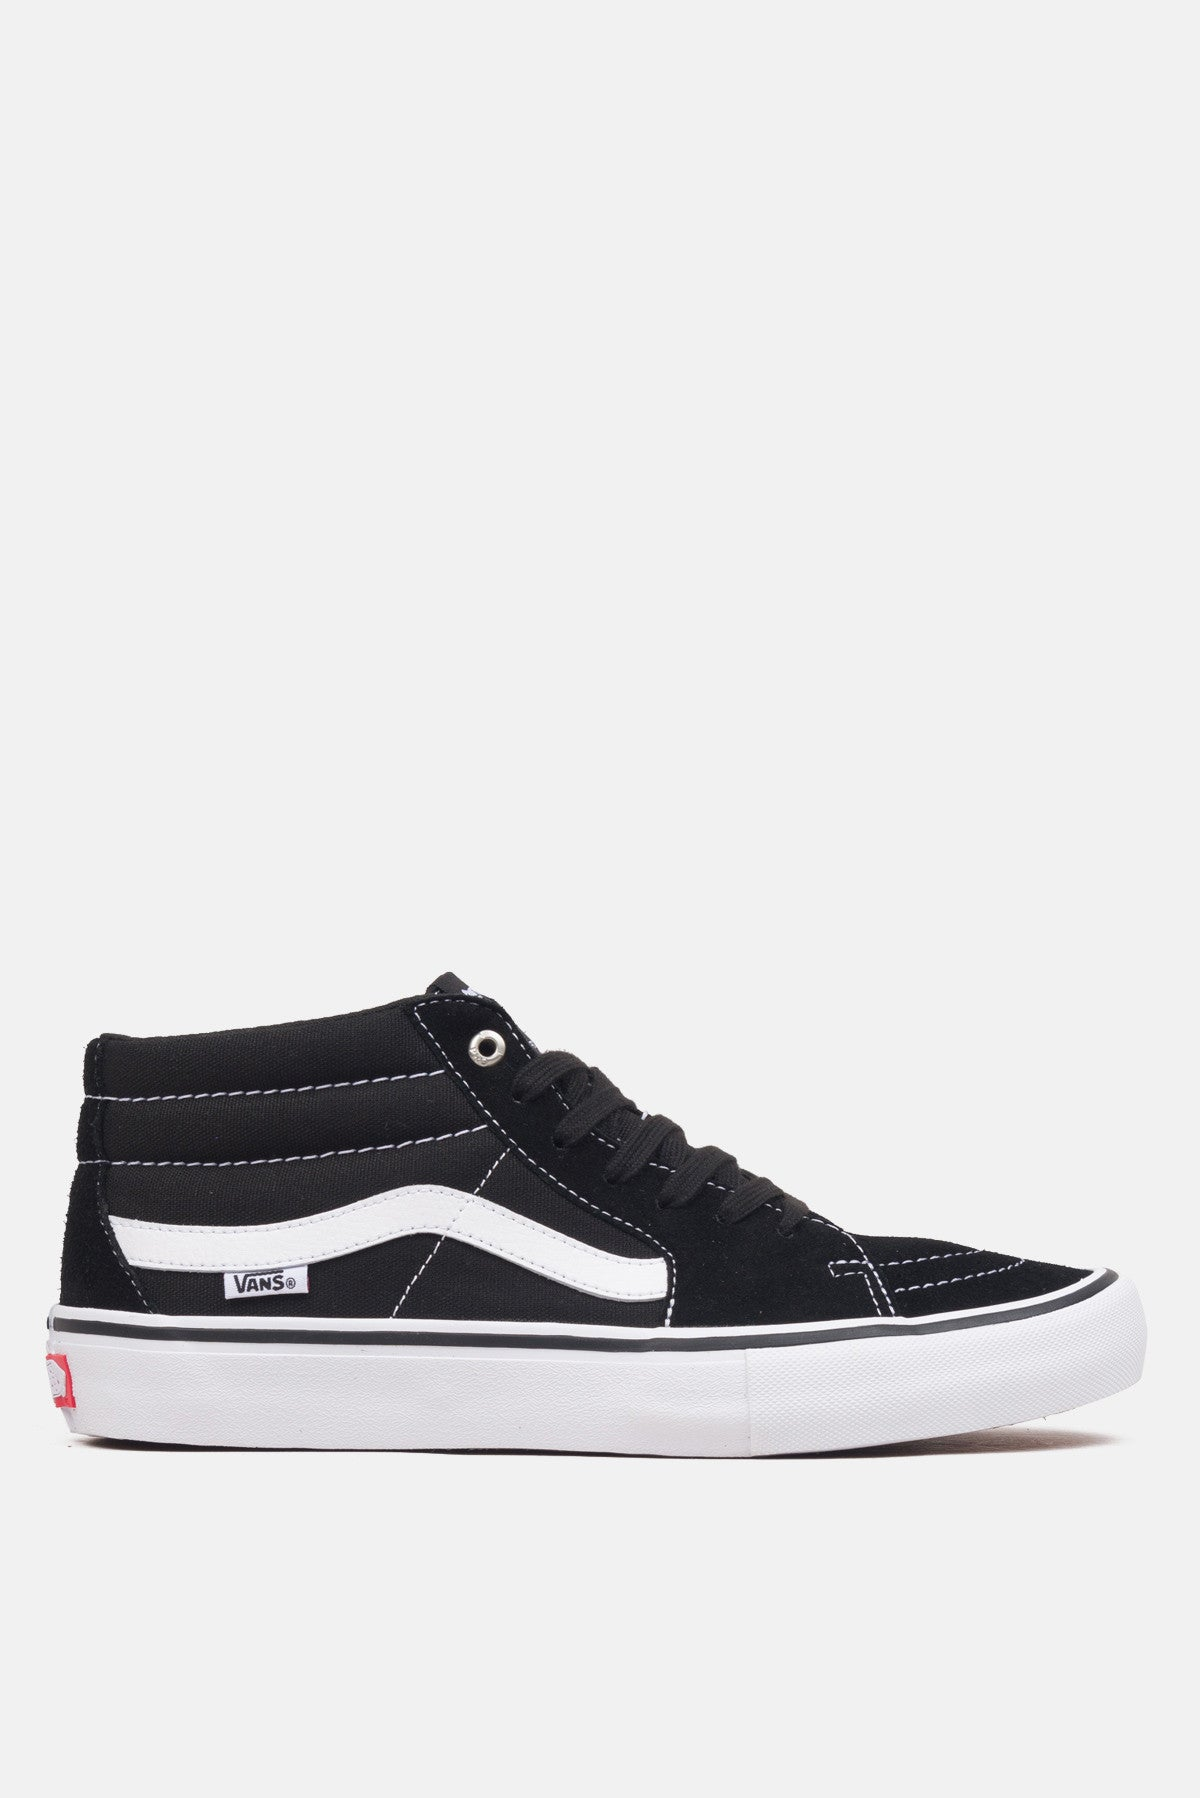 fd32e22cbd Vans Sk8 Mid Pro Shoes available from Priory